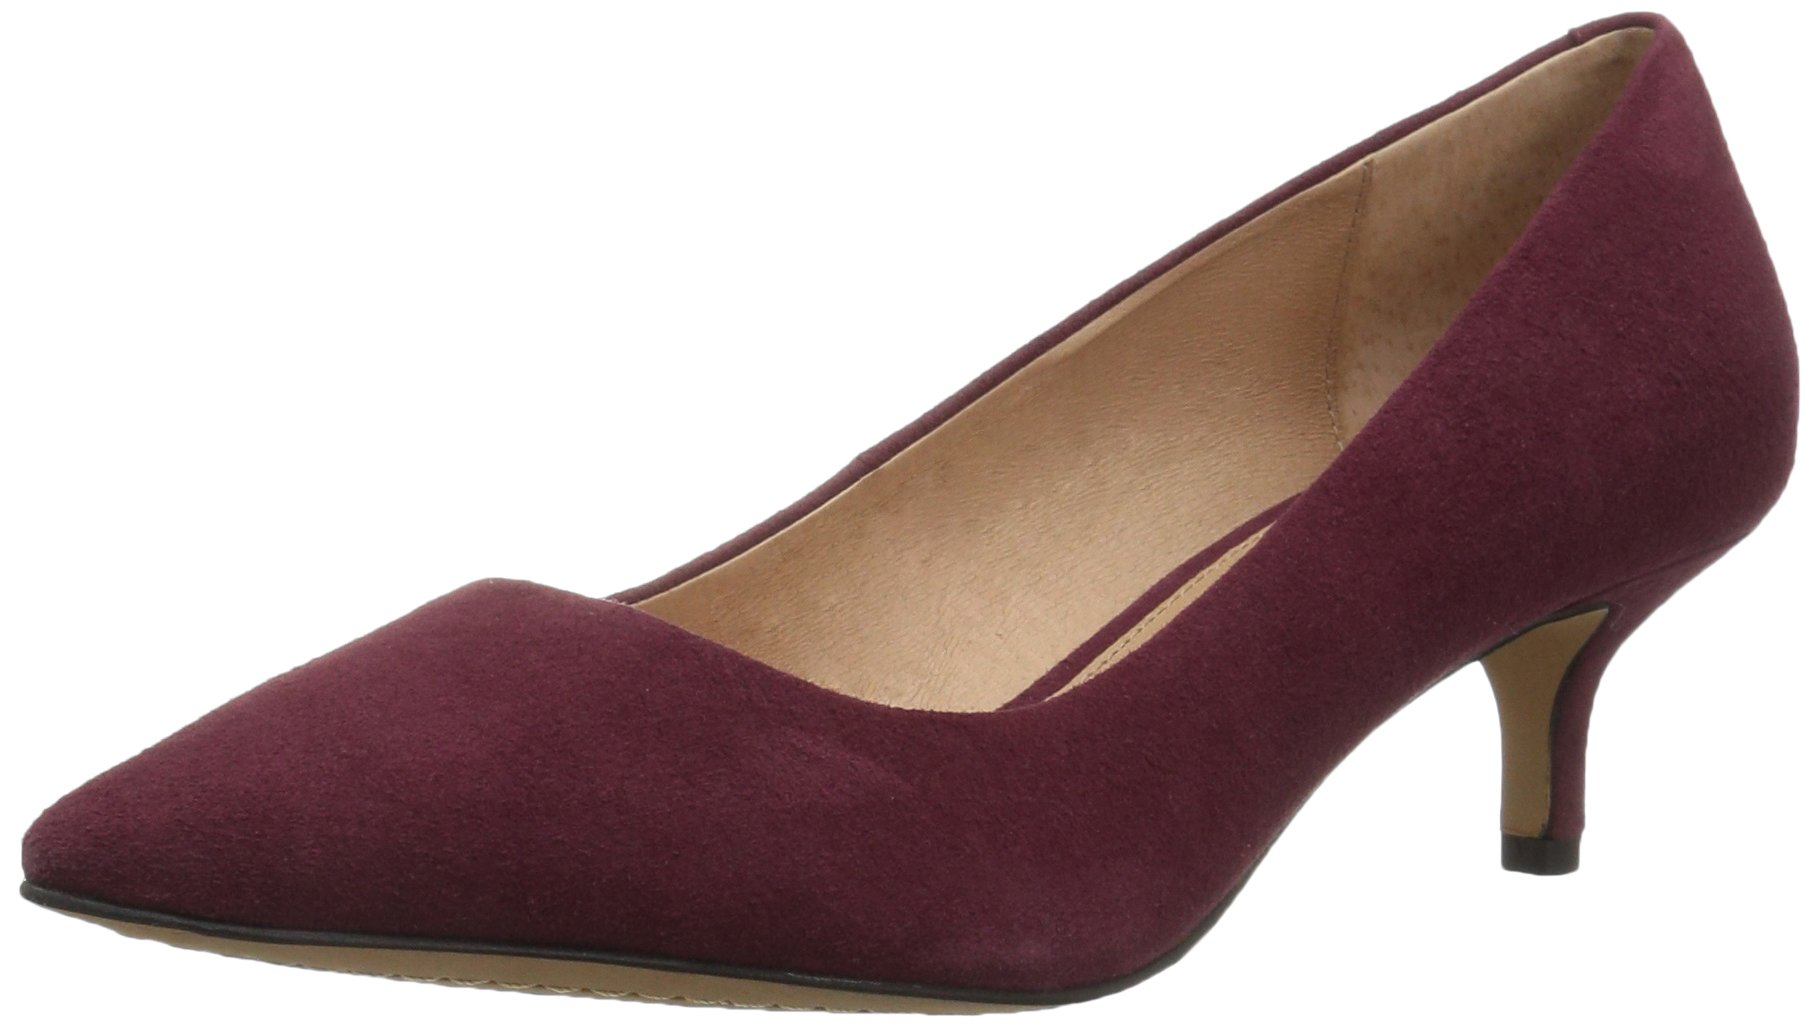 206 Collective Women's Queen Anne Kitten Heel Dress Pump, Burgundy, 8.5 B US by 206 Collective (Image #1)